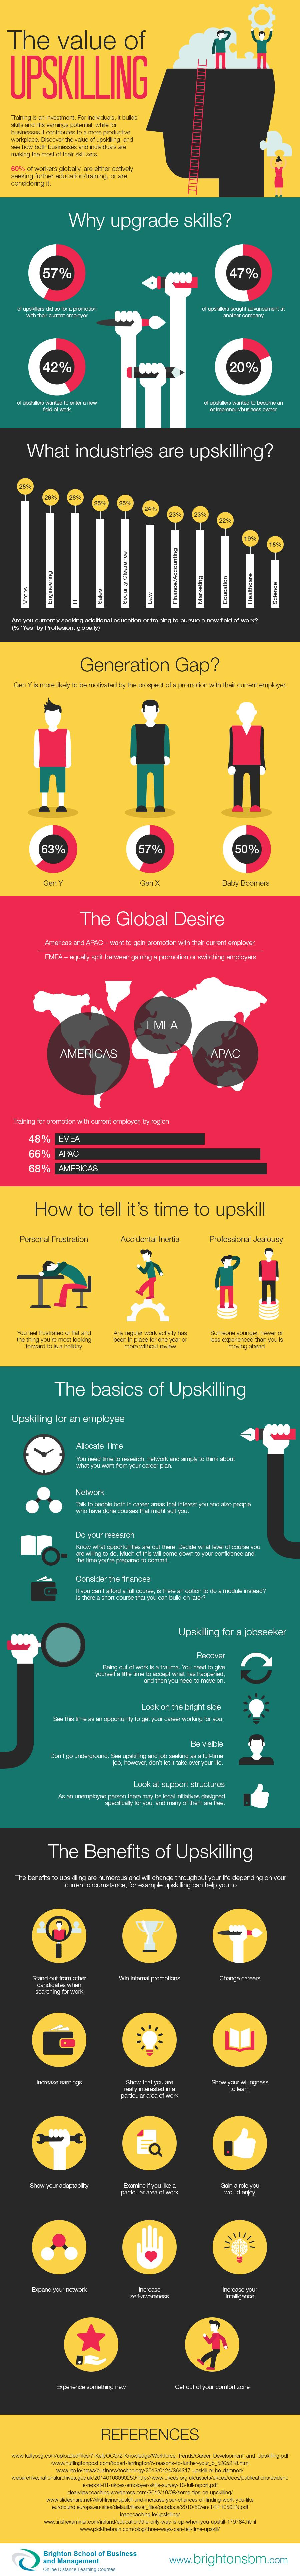 The-Value-of-Upskilling-infographic